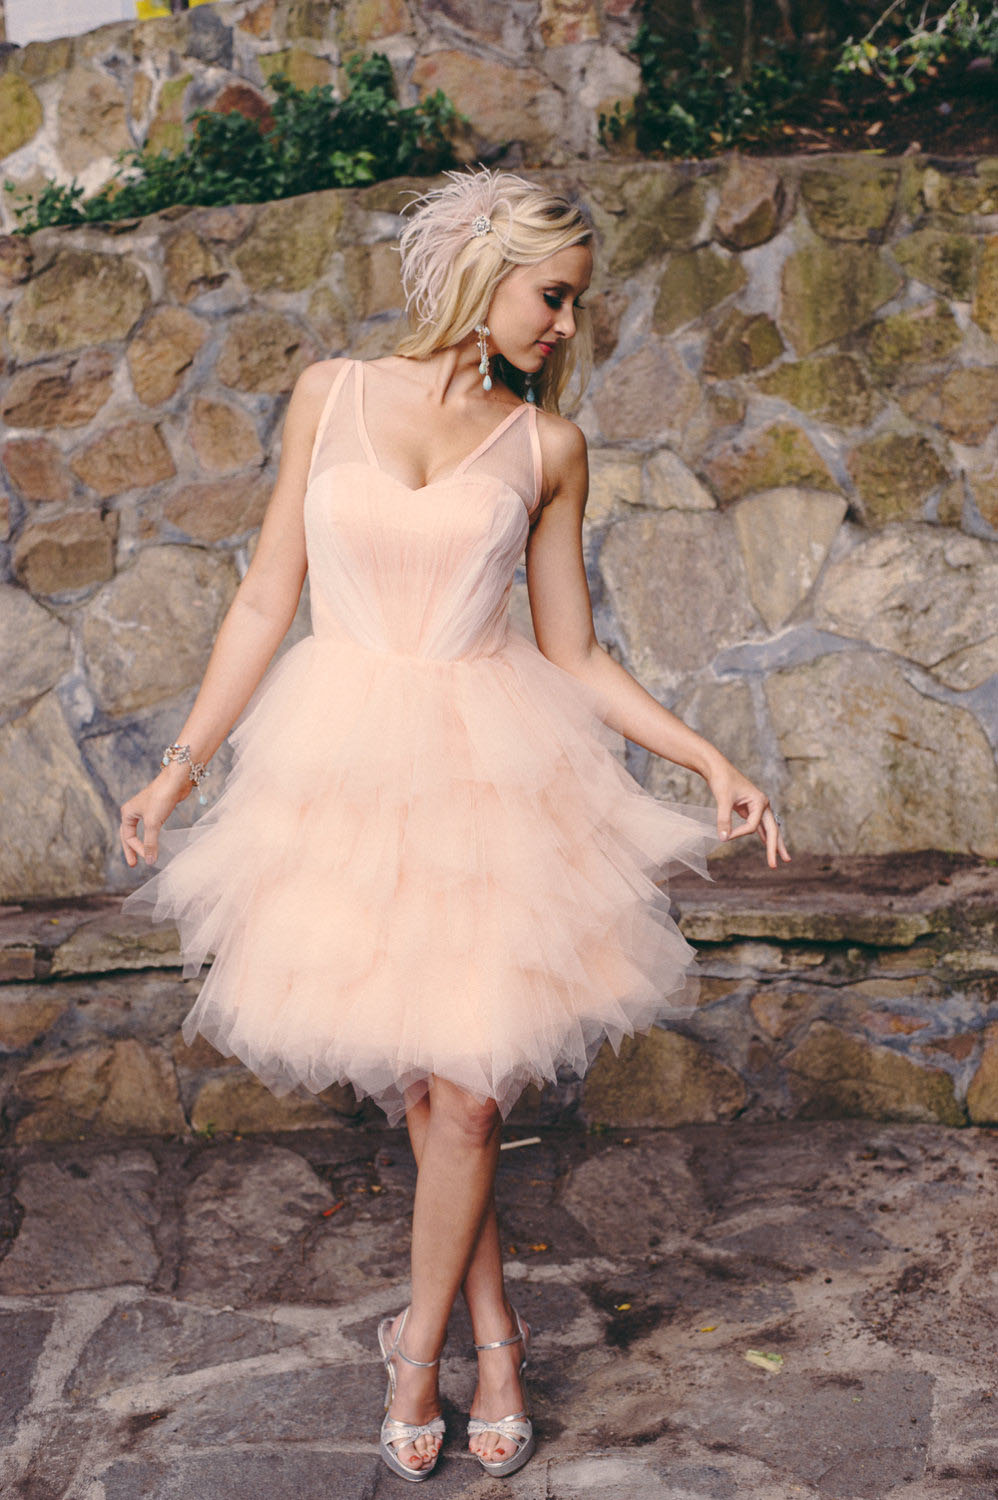 knee-length-blush-colored-layered-organza-short-informal-wedding-dress-1 25+ Women Engagement Outfit Ideas Coming in 2018